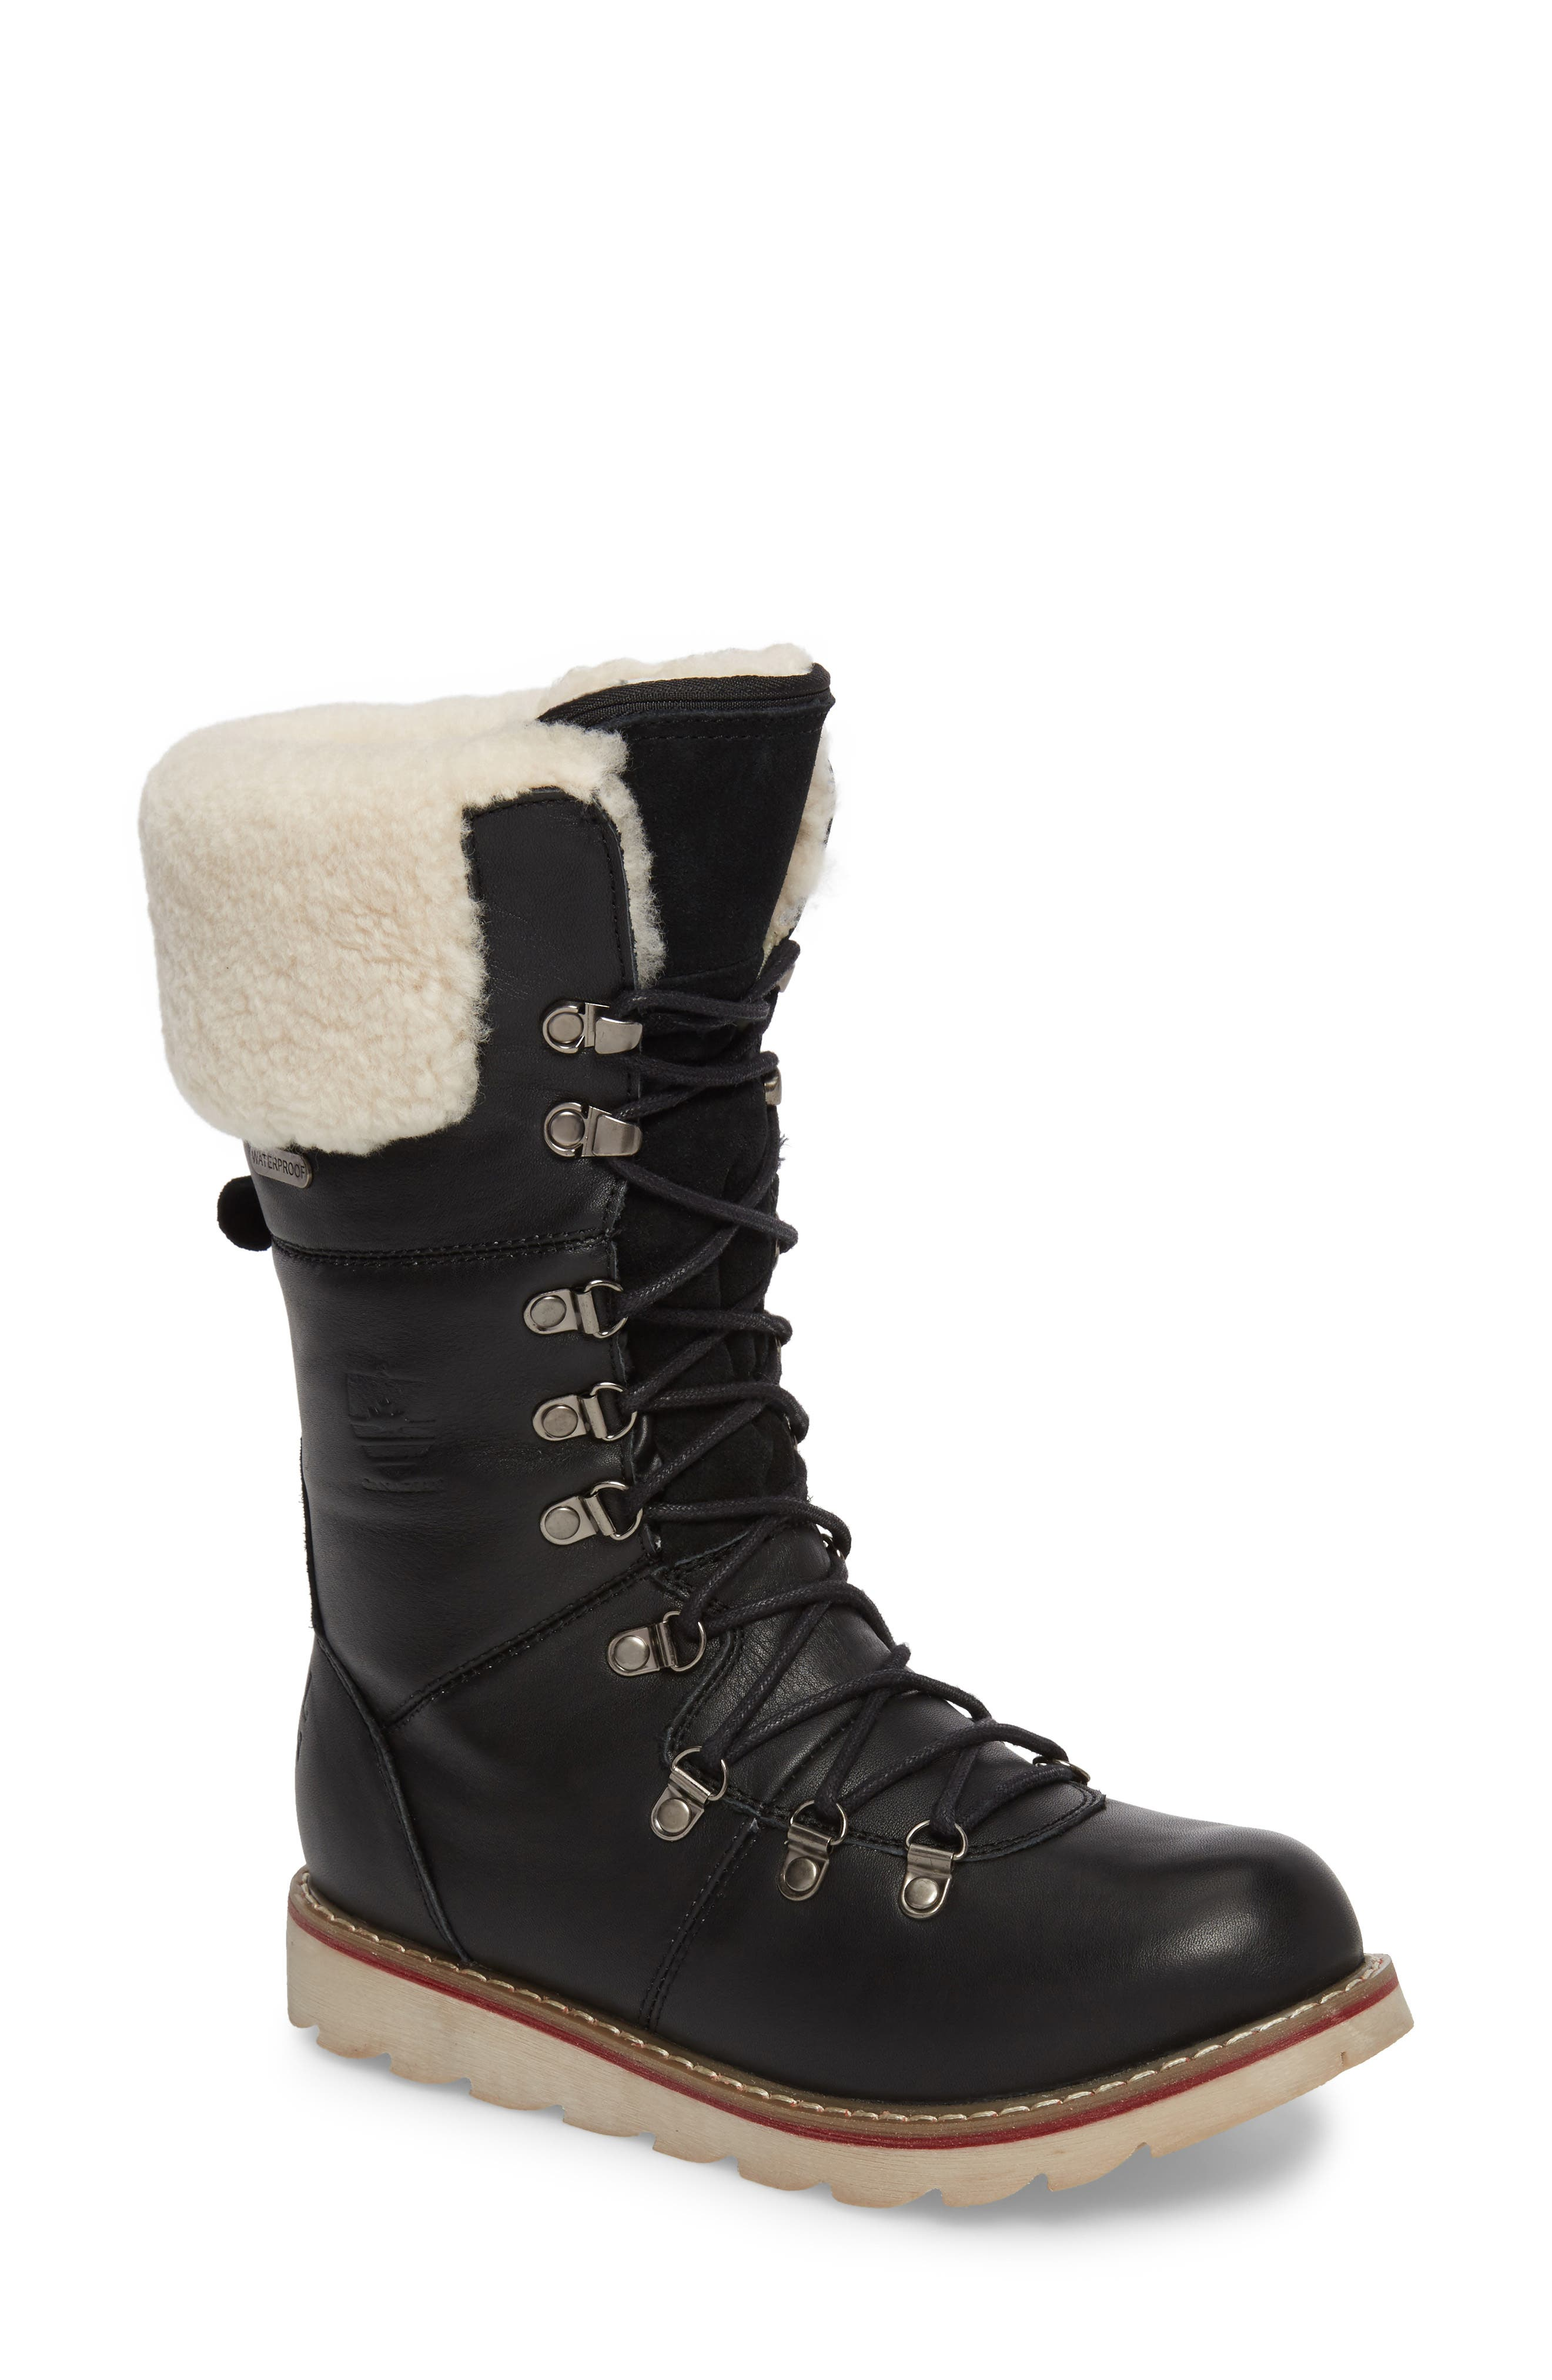 Louise Waterproof Snow Boot with Genuine Shearling Cuff,                         Main,                         color, Black Leather